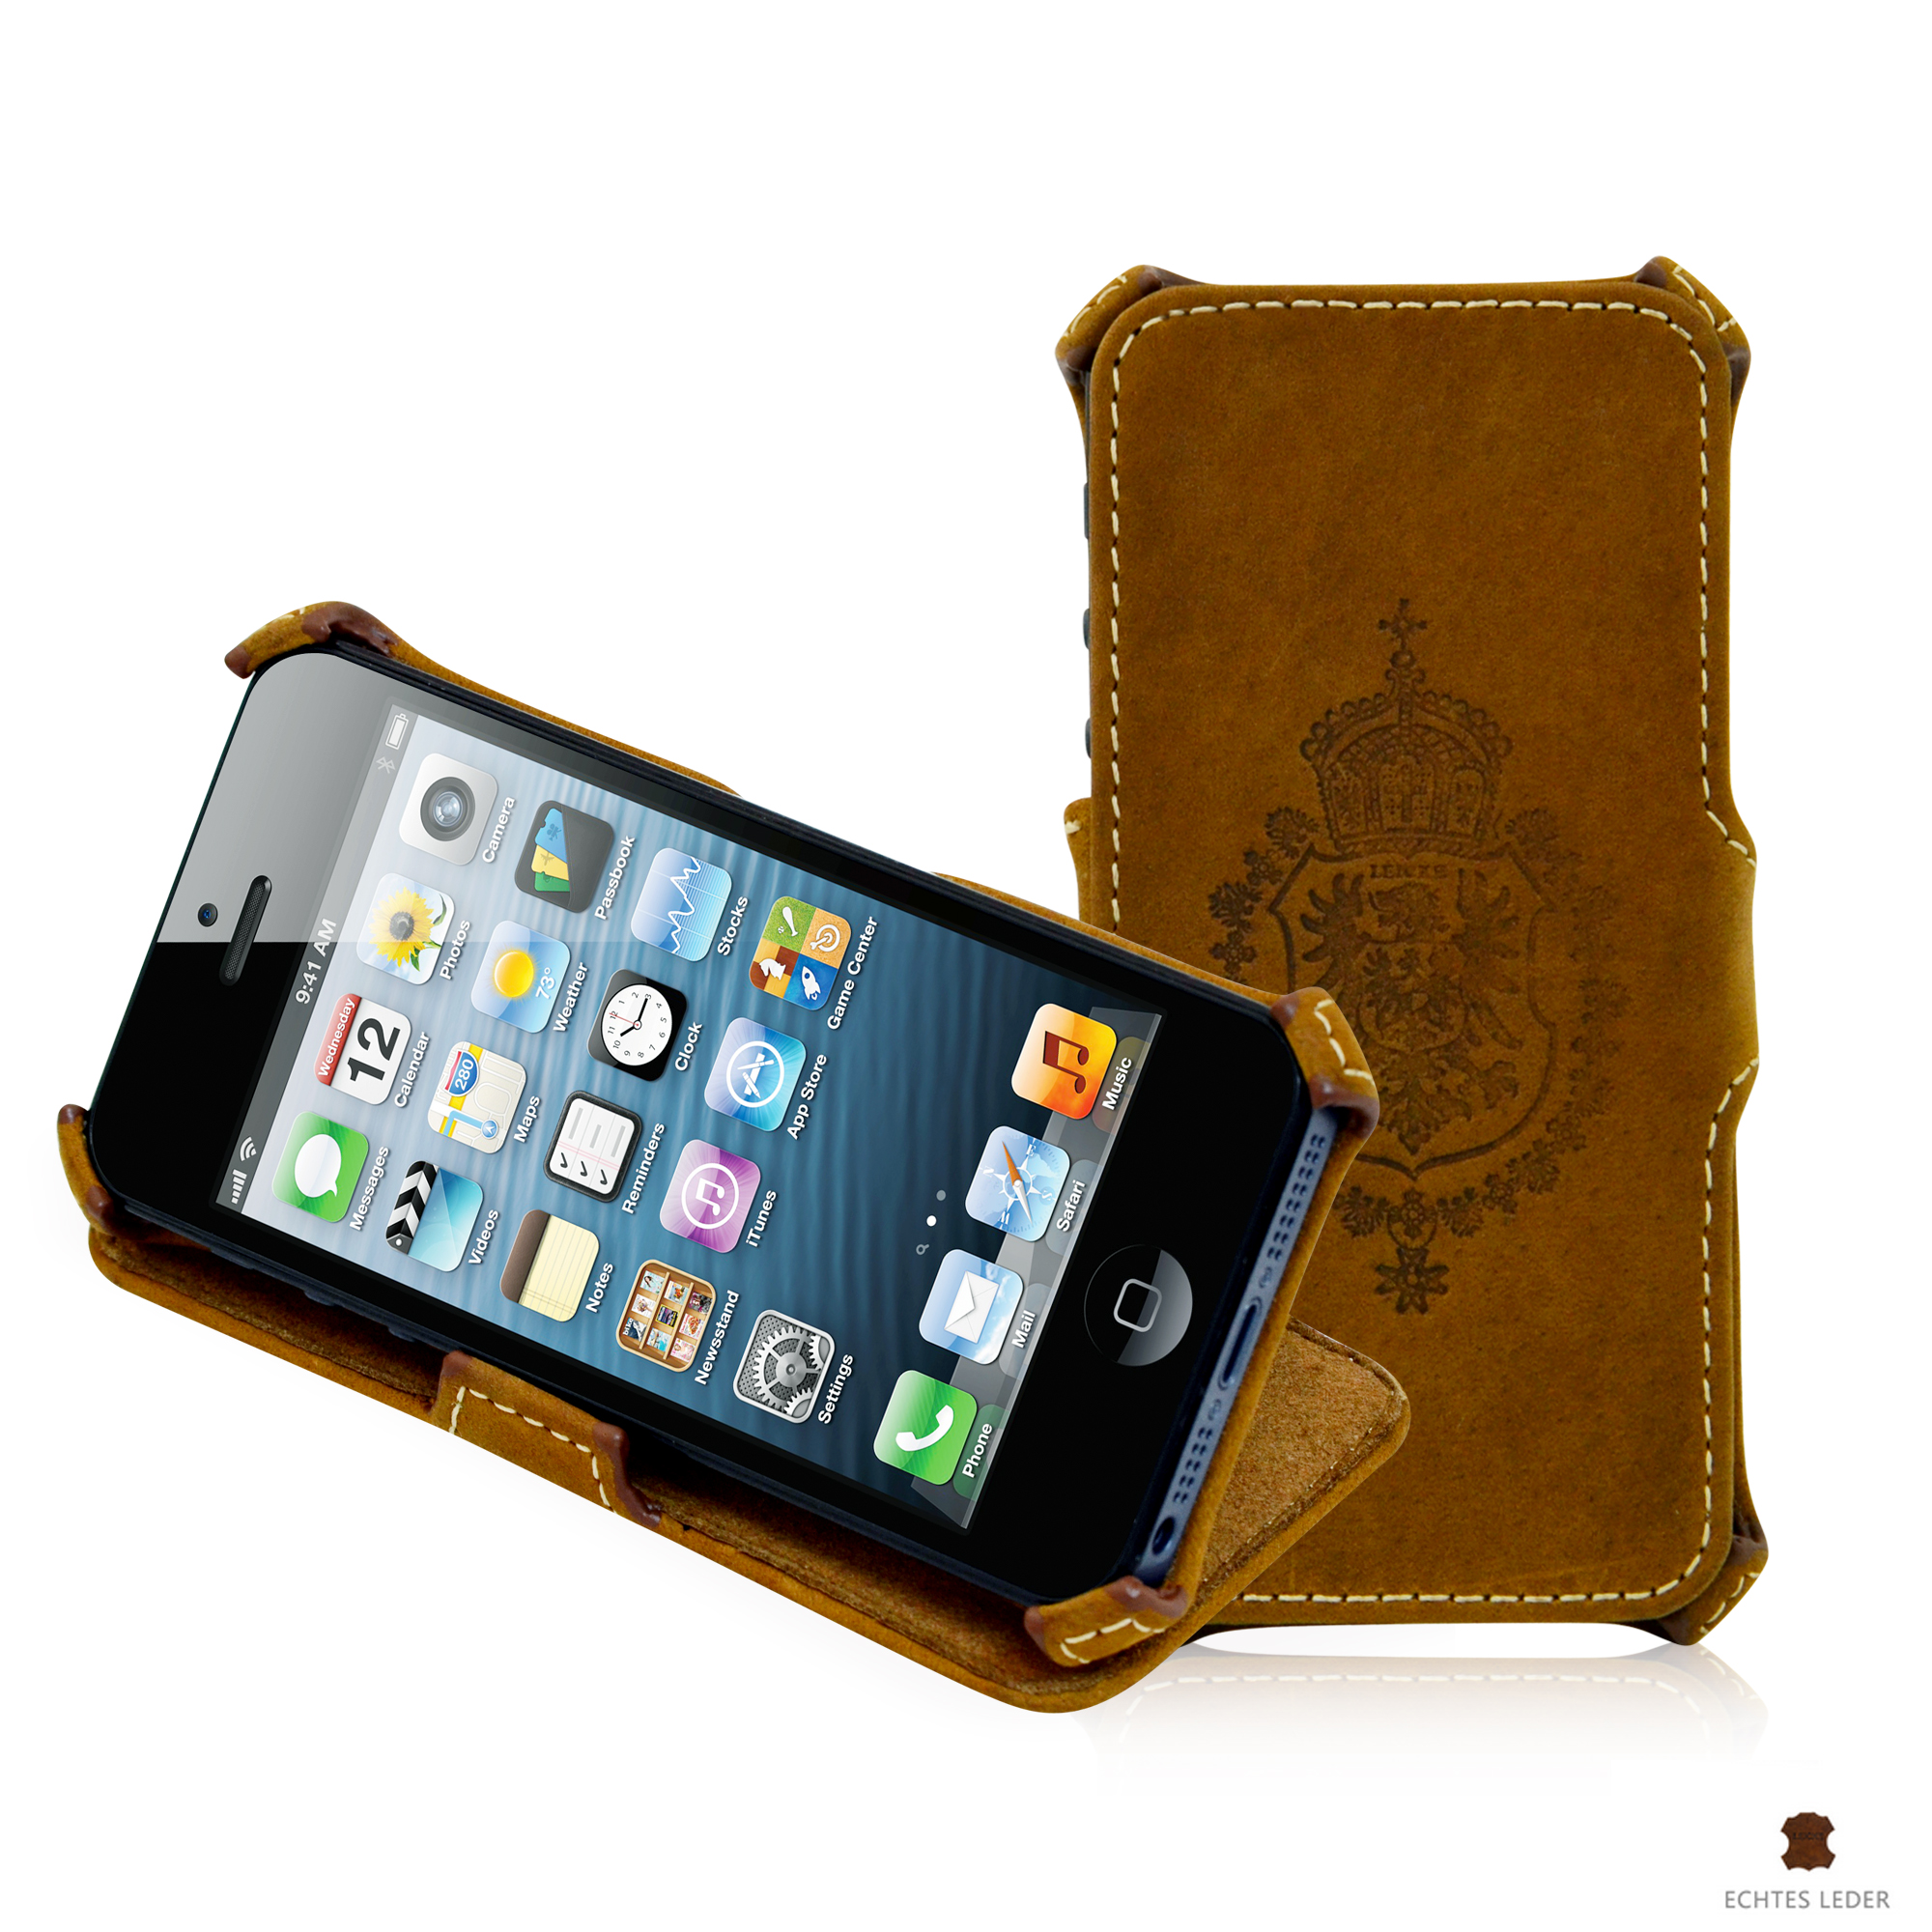 Iphone 5s Tasche Amazon